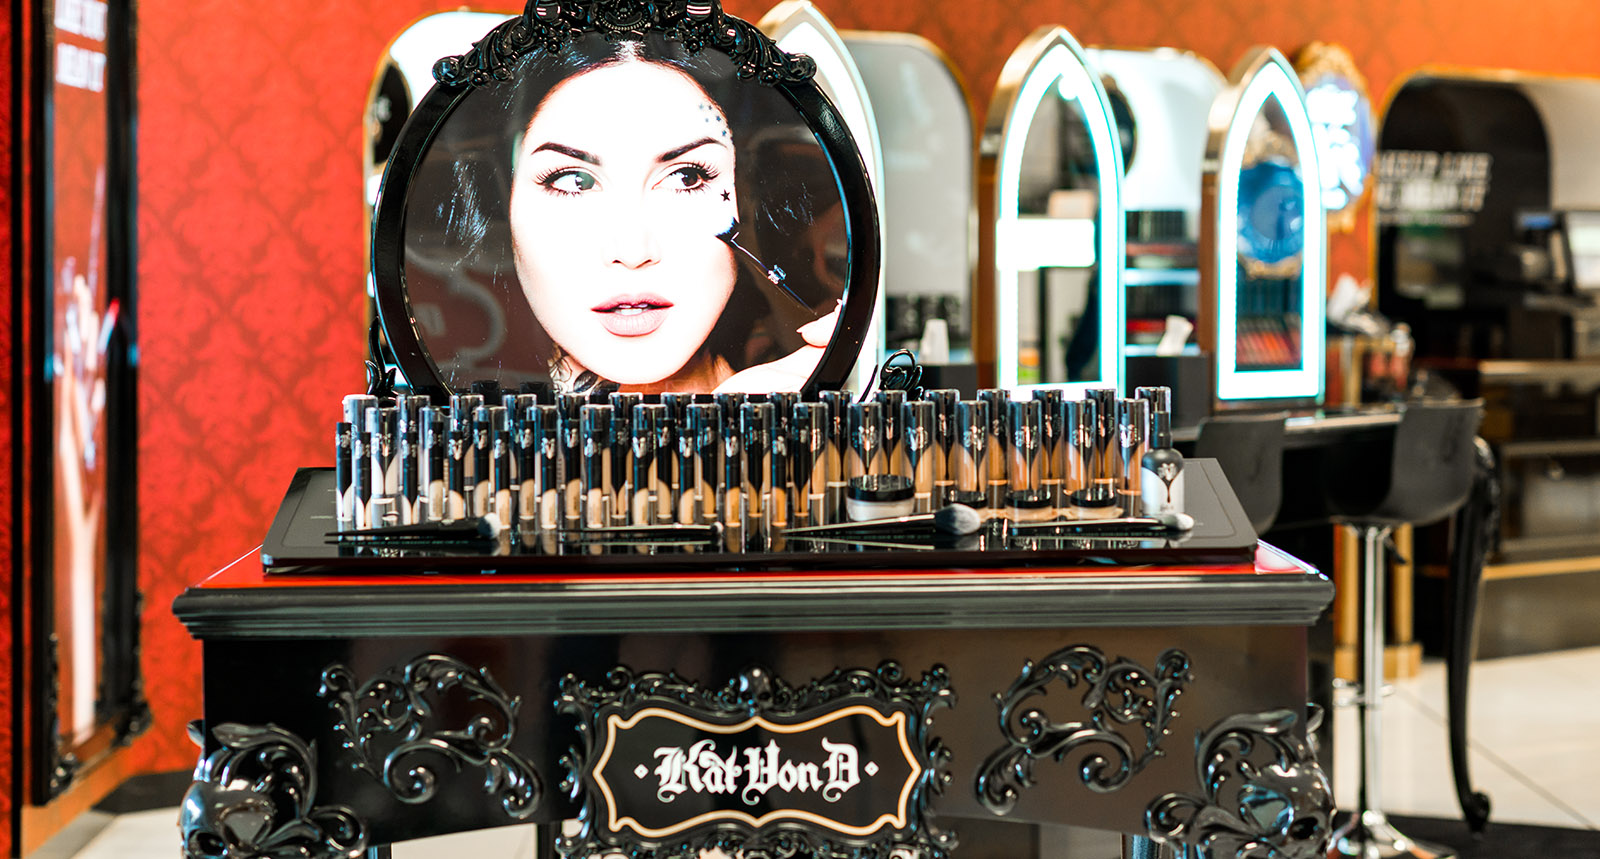 Makeup table with photo of Kat von D